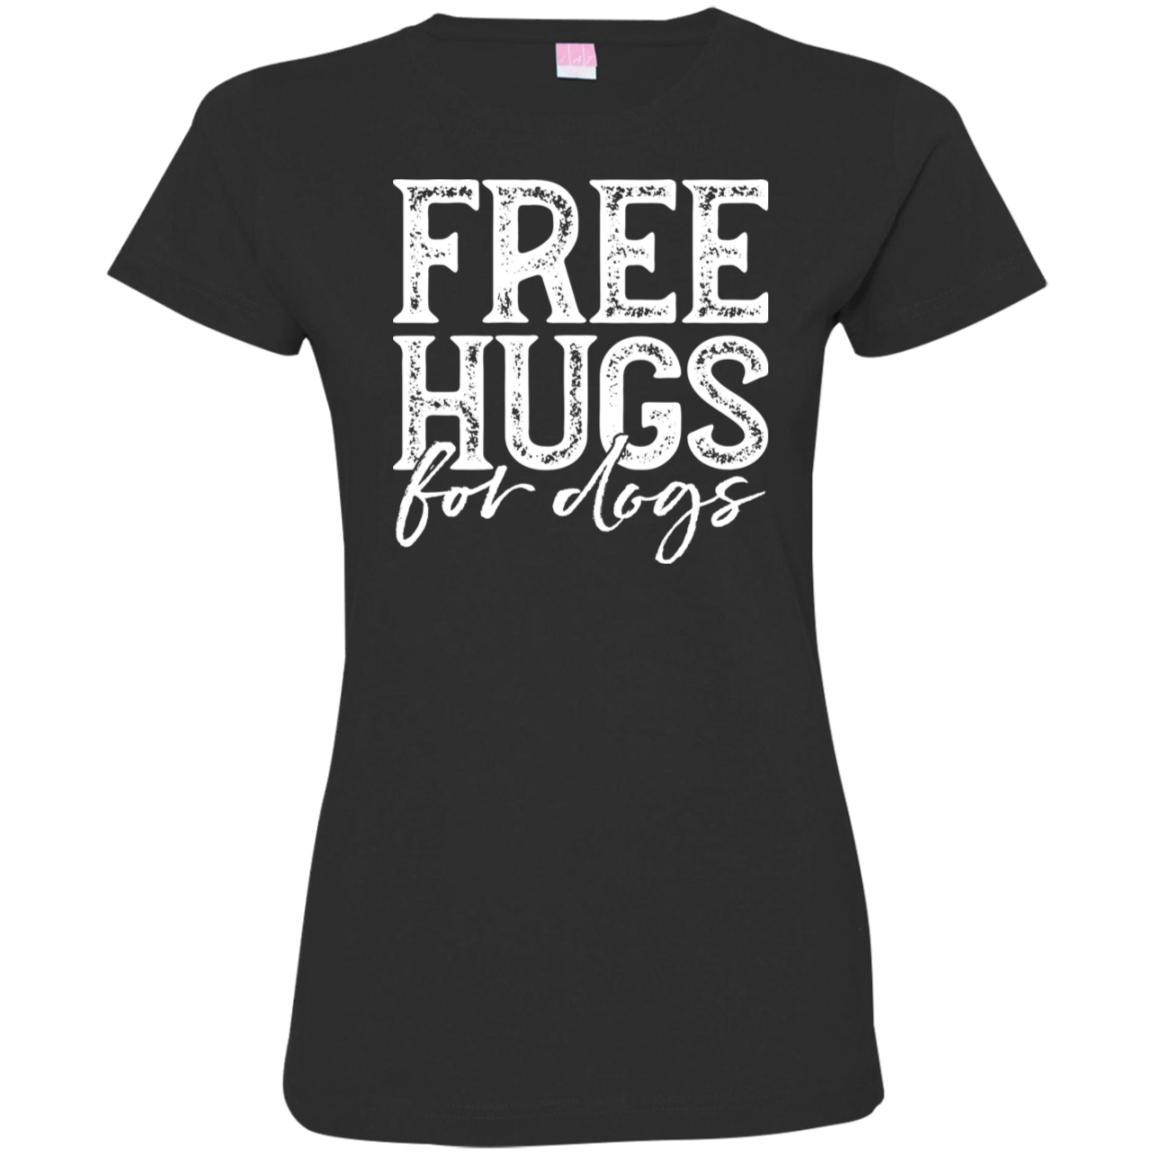 Free Hugs For Dogs Fitted T-Shirt For Women